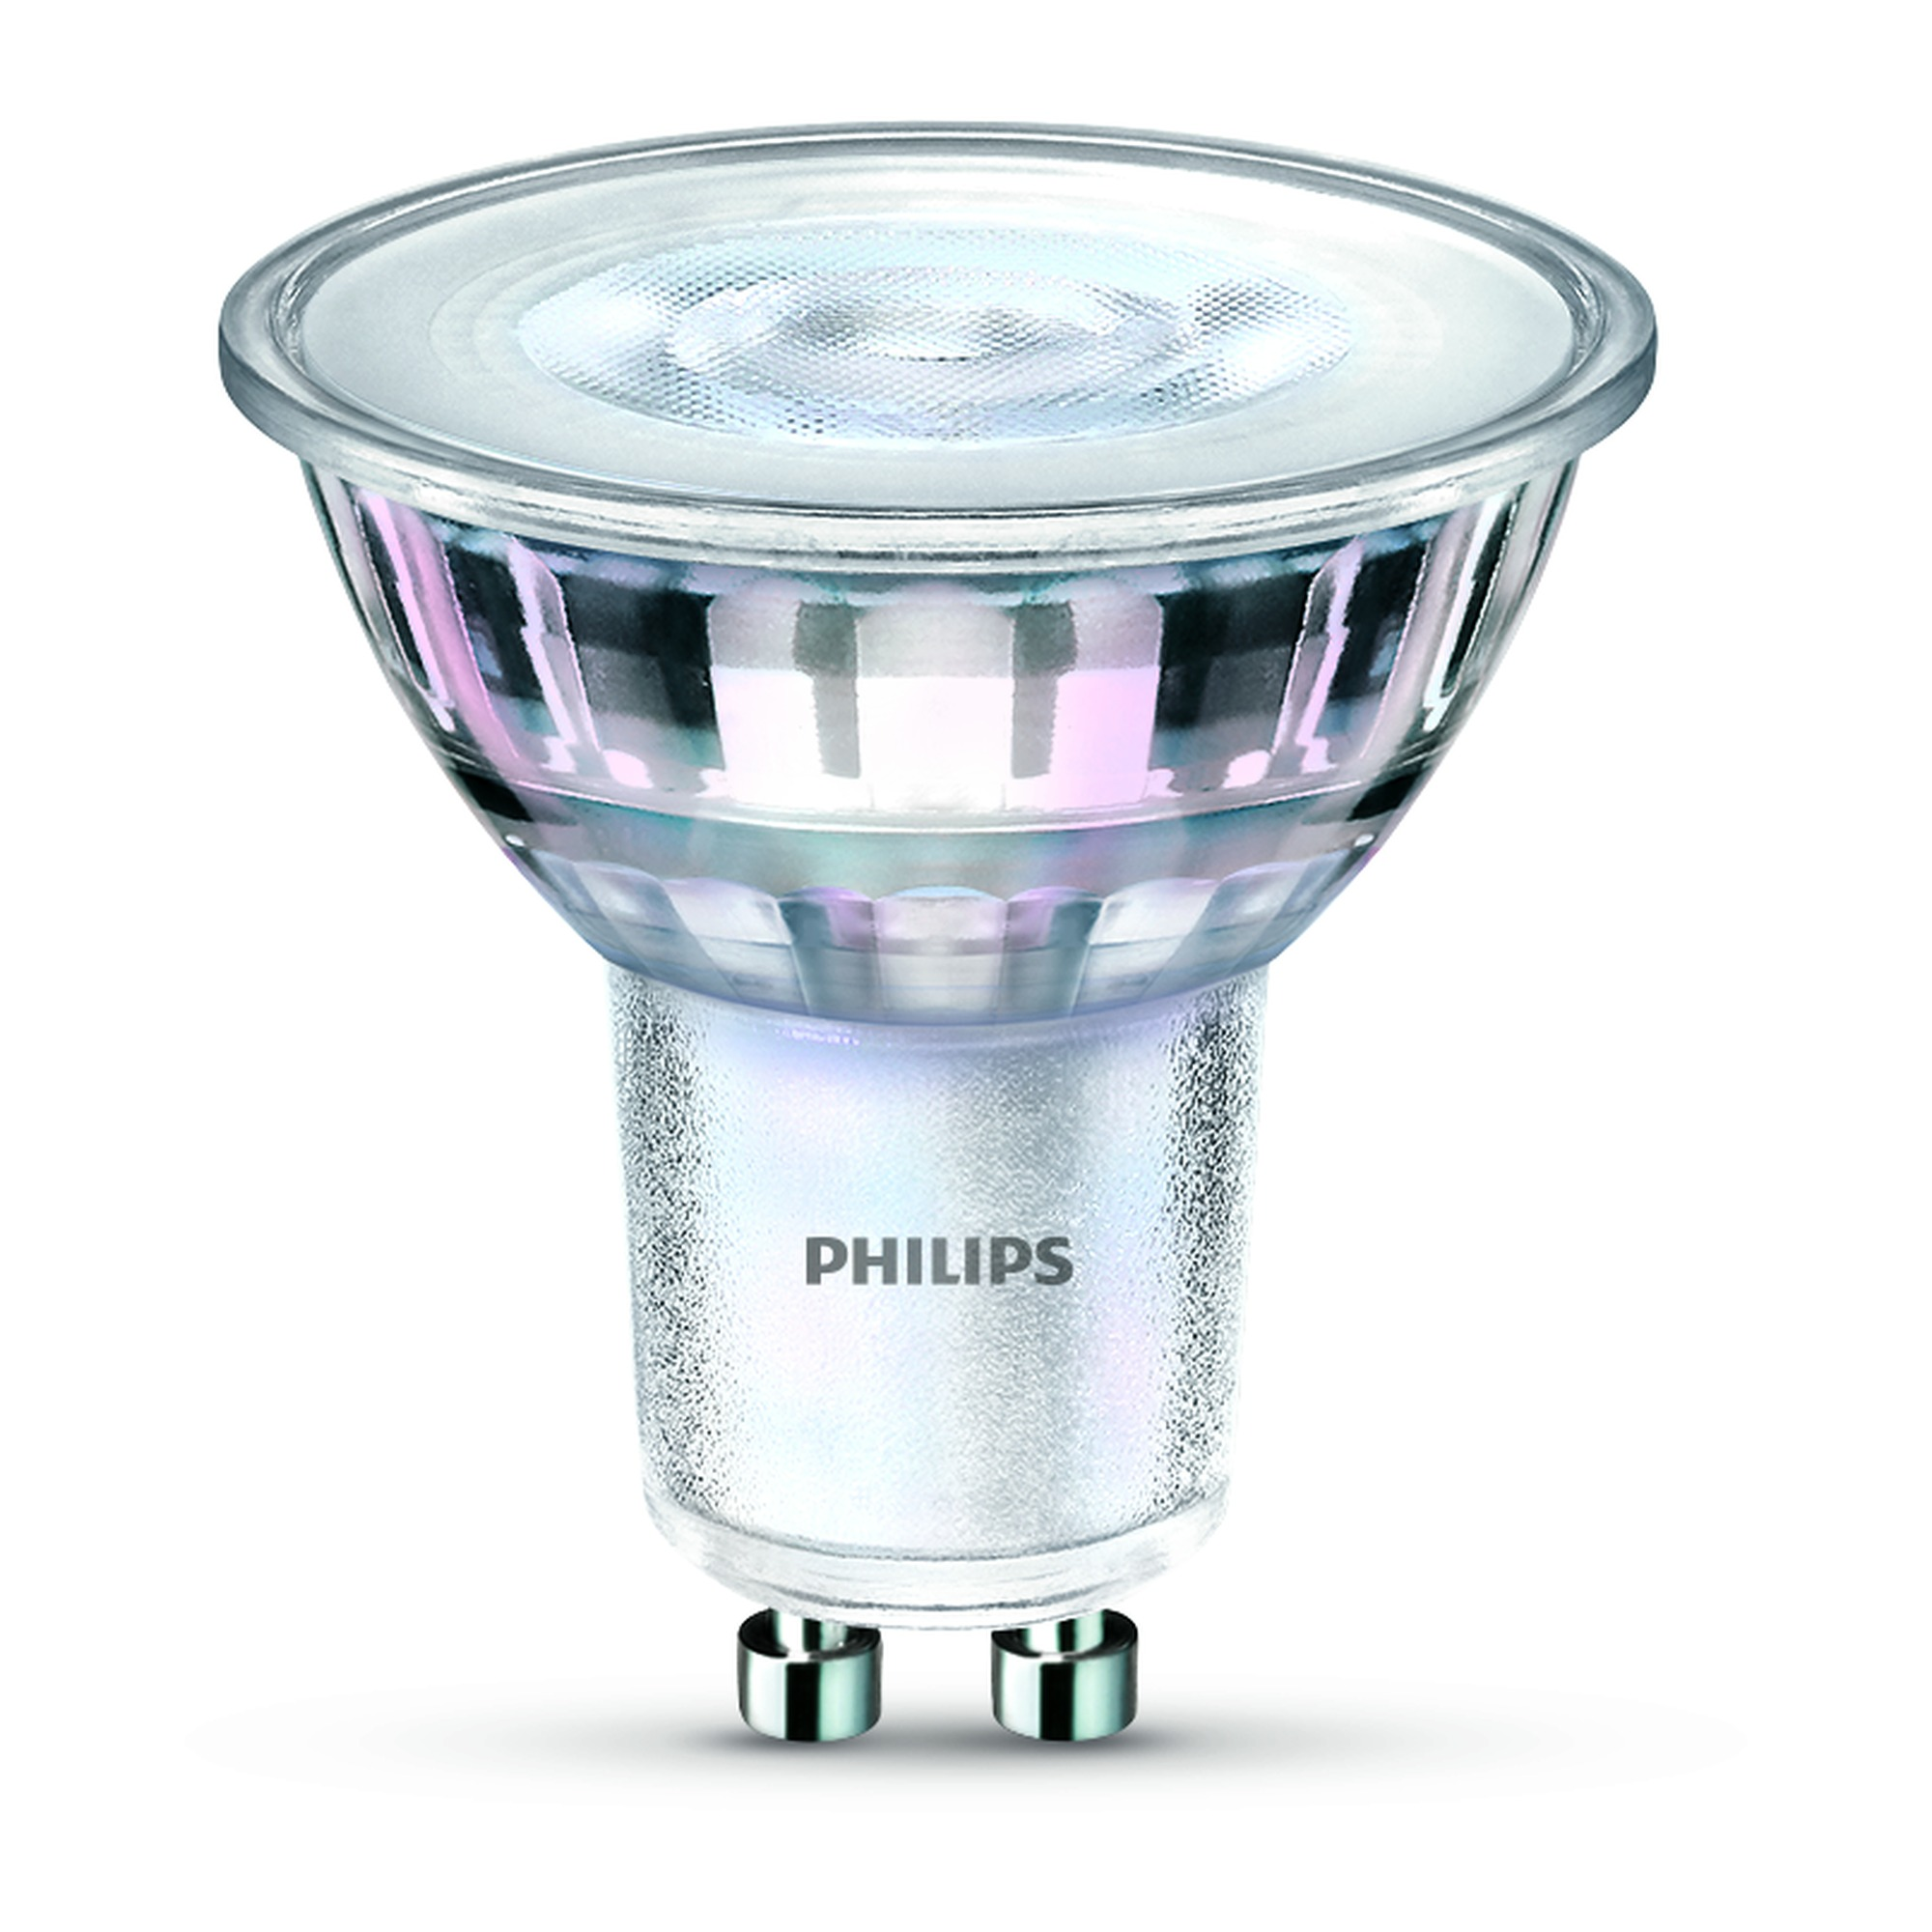 philips led spot gu10 5 5w 50w 345 lumen dimbaar warm glow alle lampen lampen. Black Bedroom Furniture Sets. Home Design Ideas